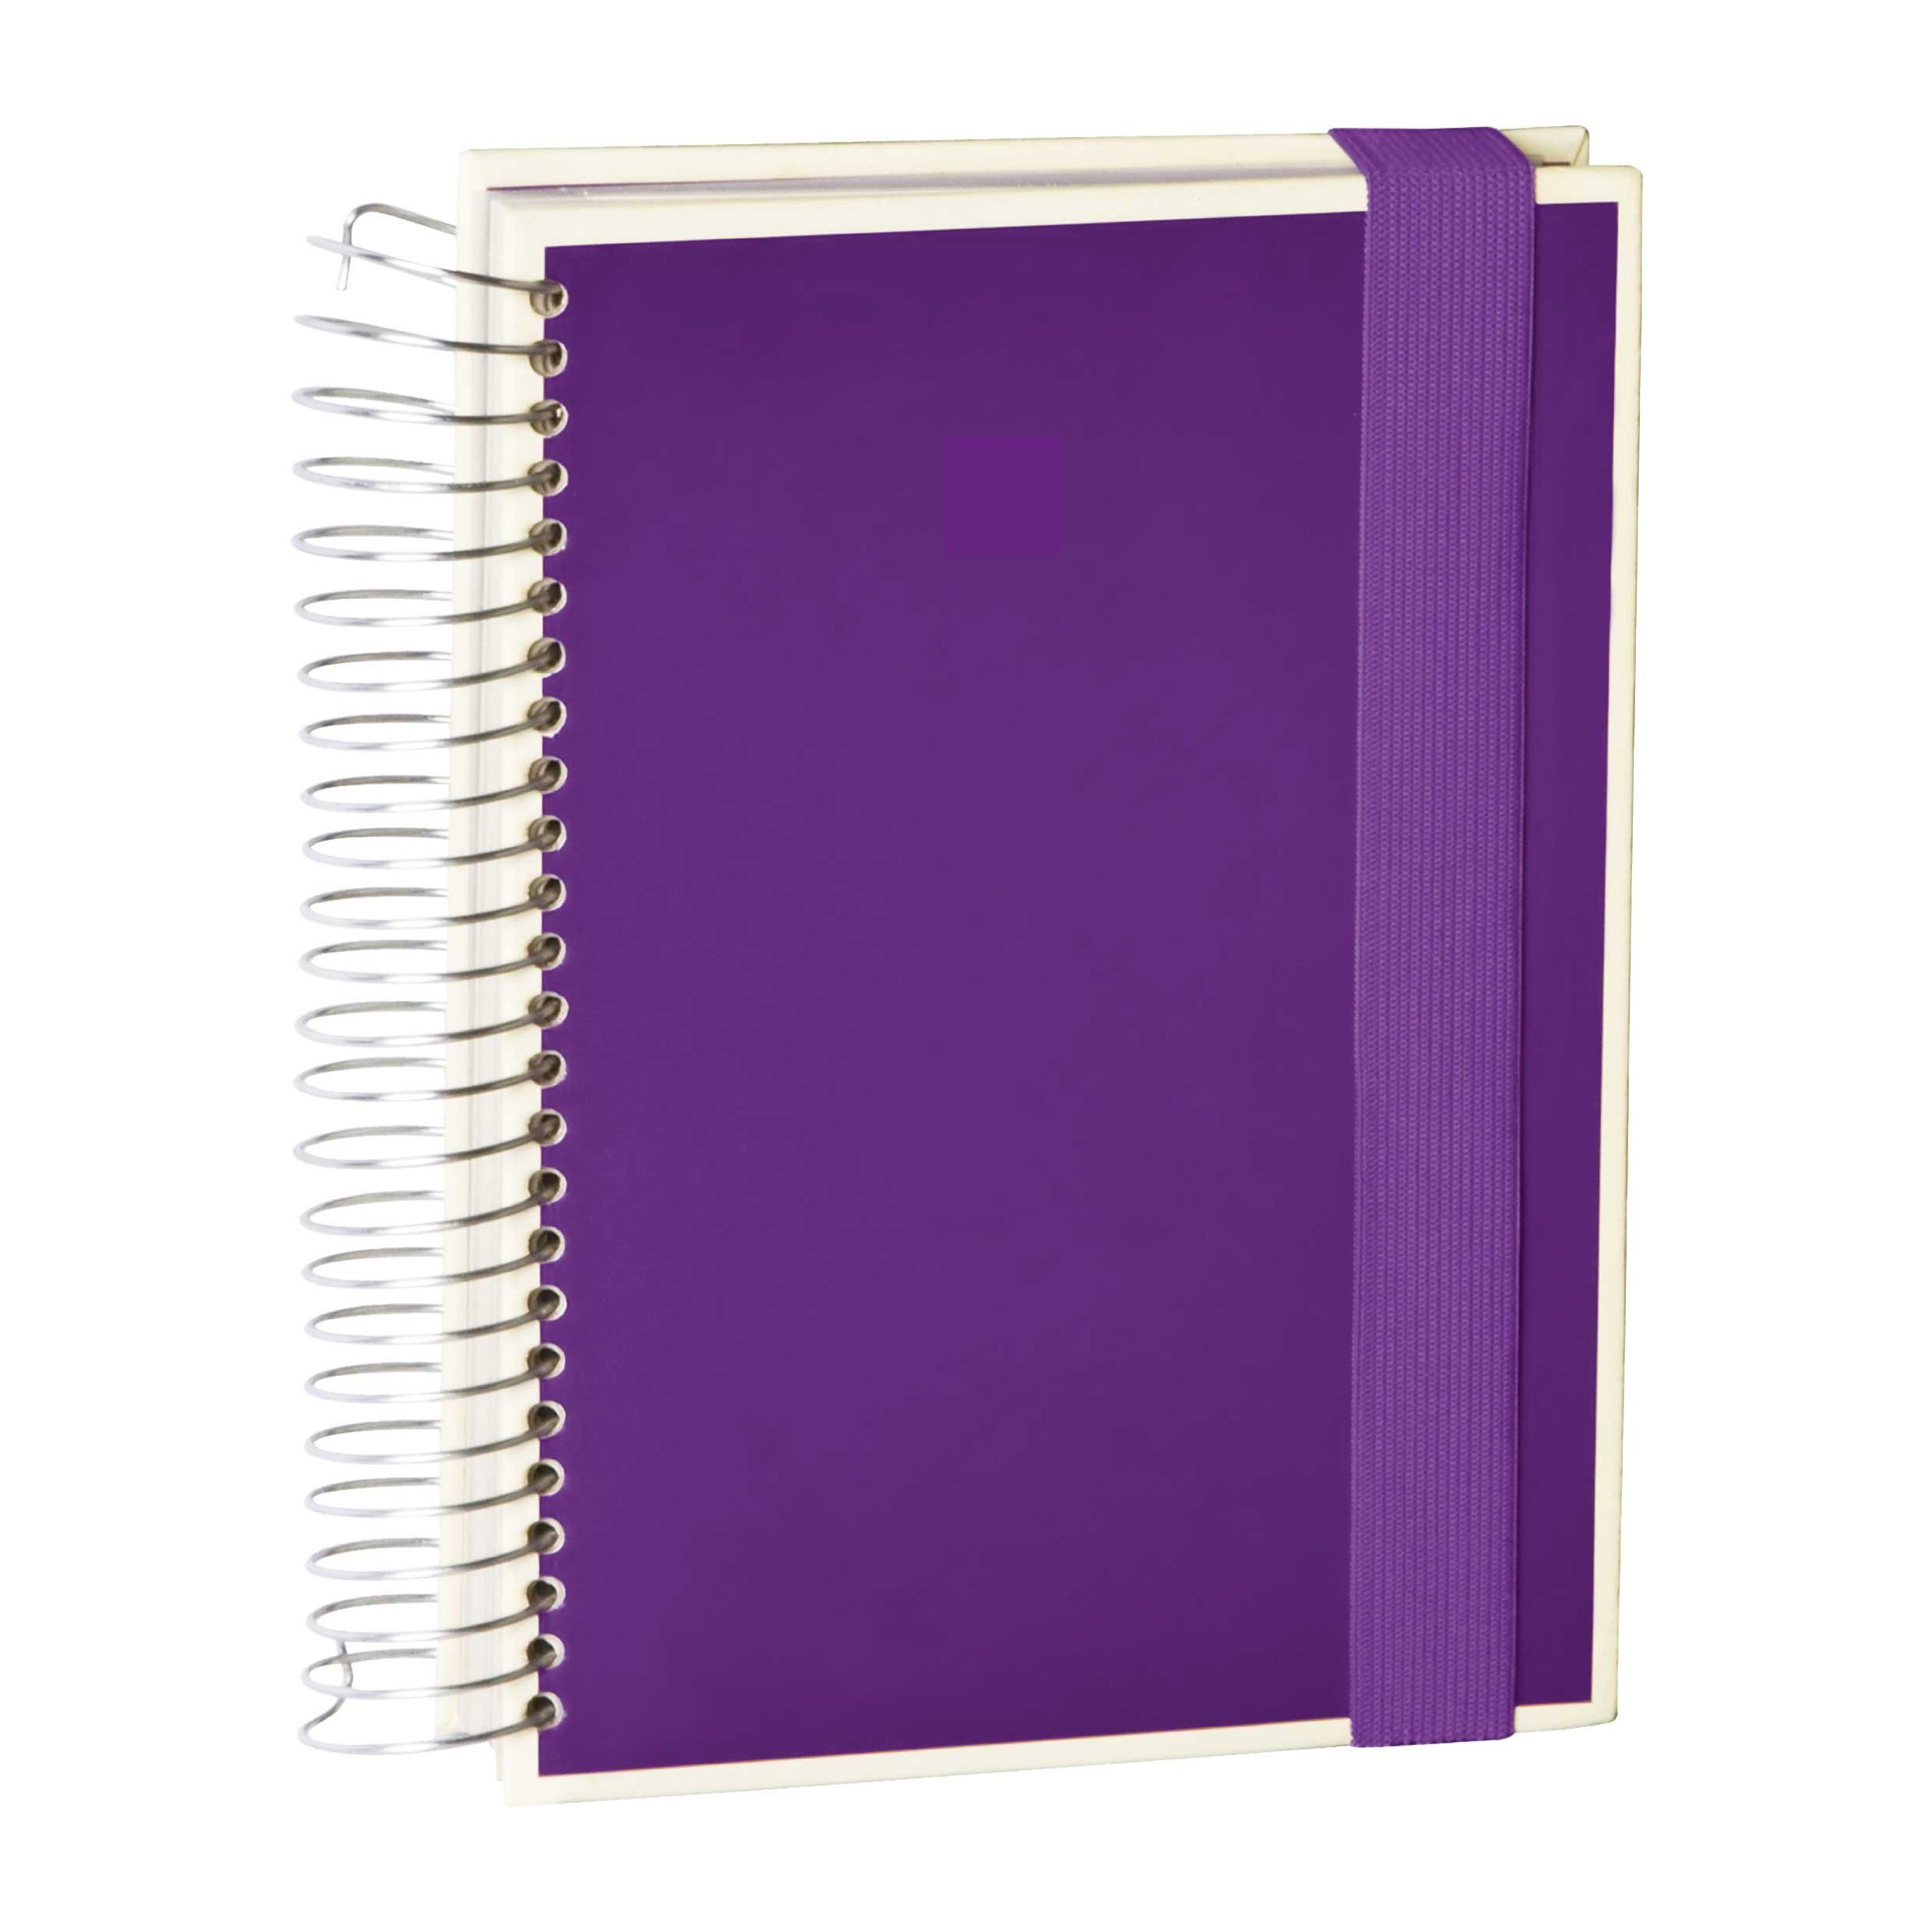 Semikolon Mucho Spiral Notebook with Lined, Graph and Blank Pages, Plum (1320018)